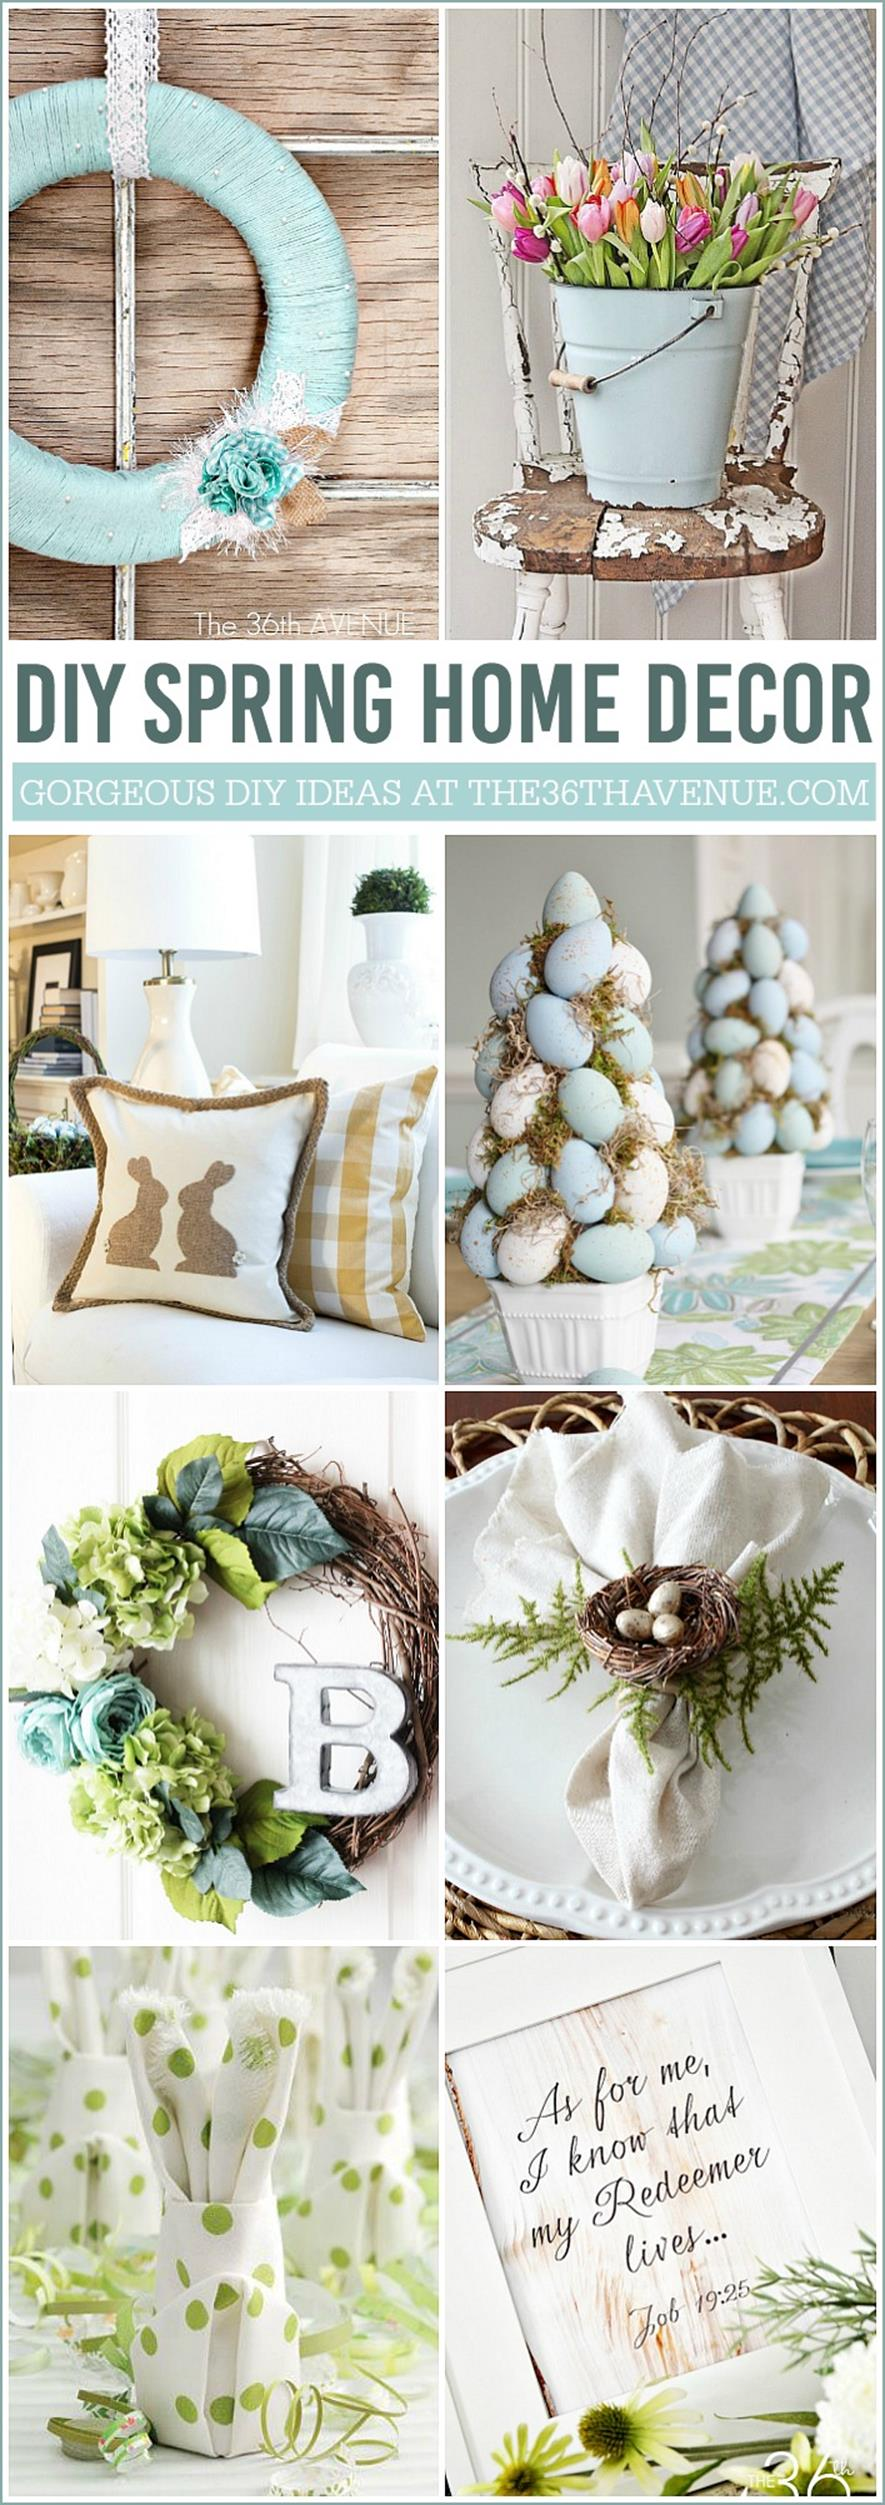 Creative Homemade Crafts for House Decorations Ideas 46